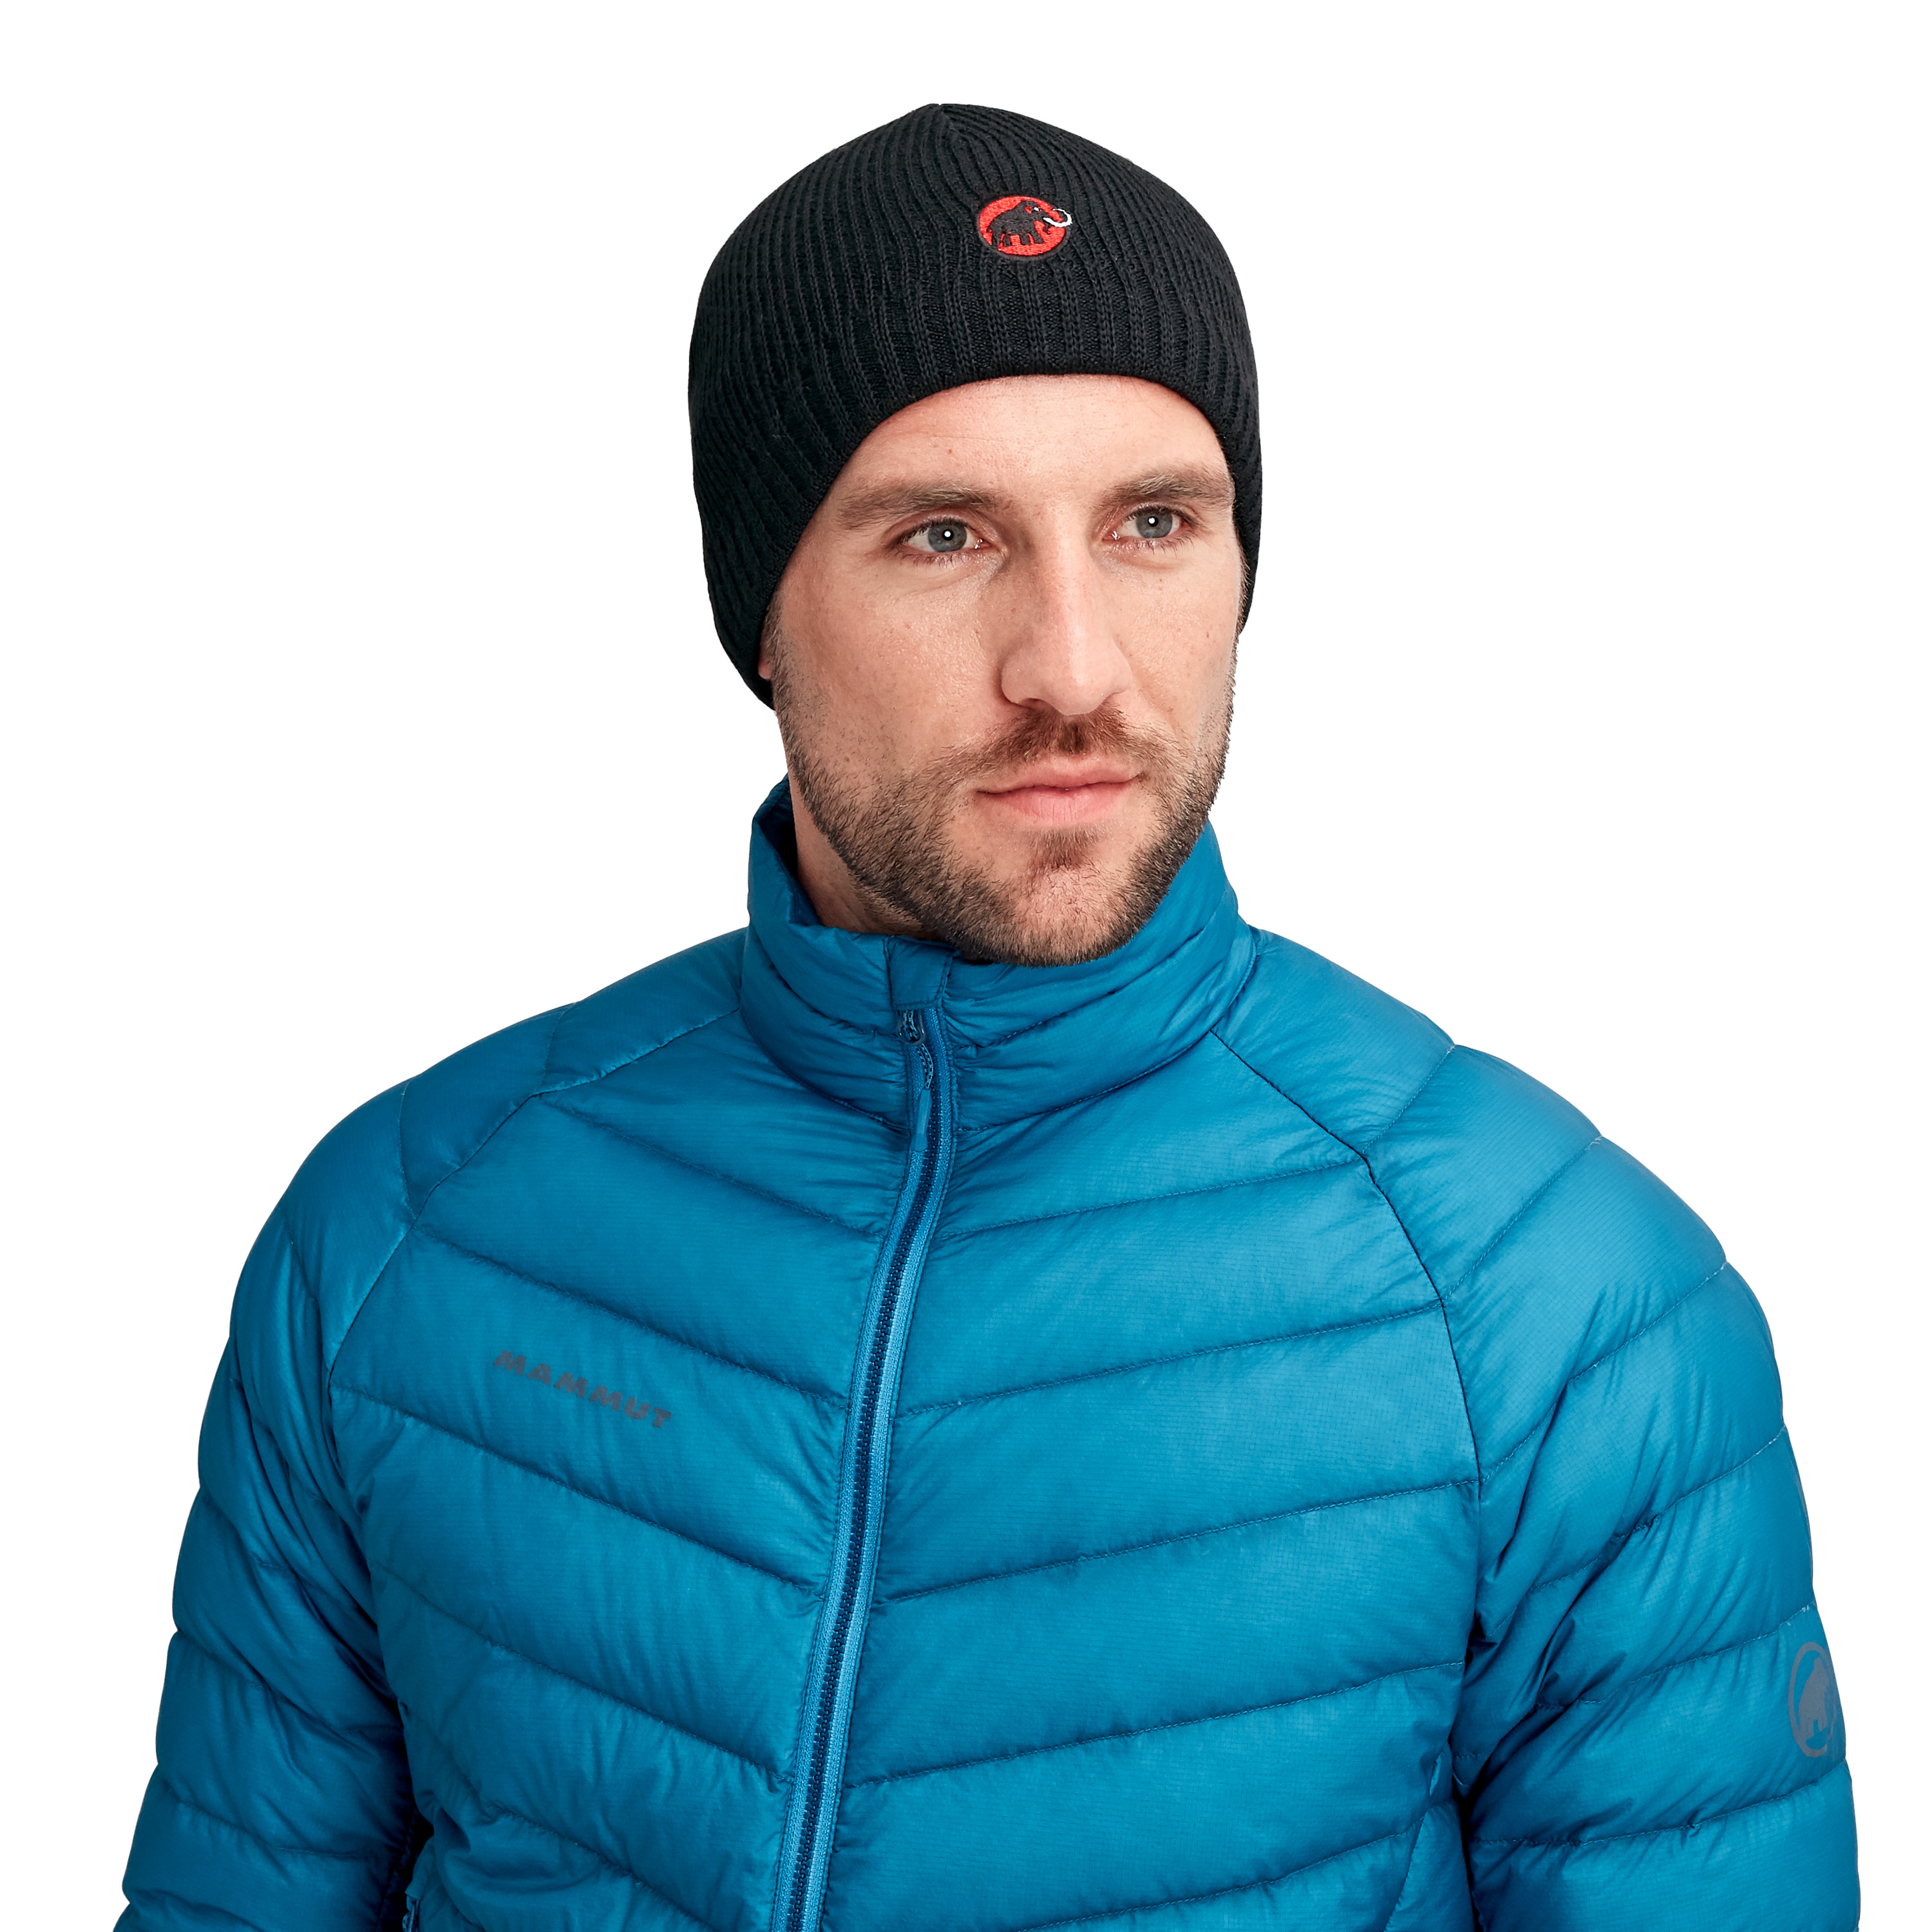 Sublime Beanie product image